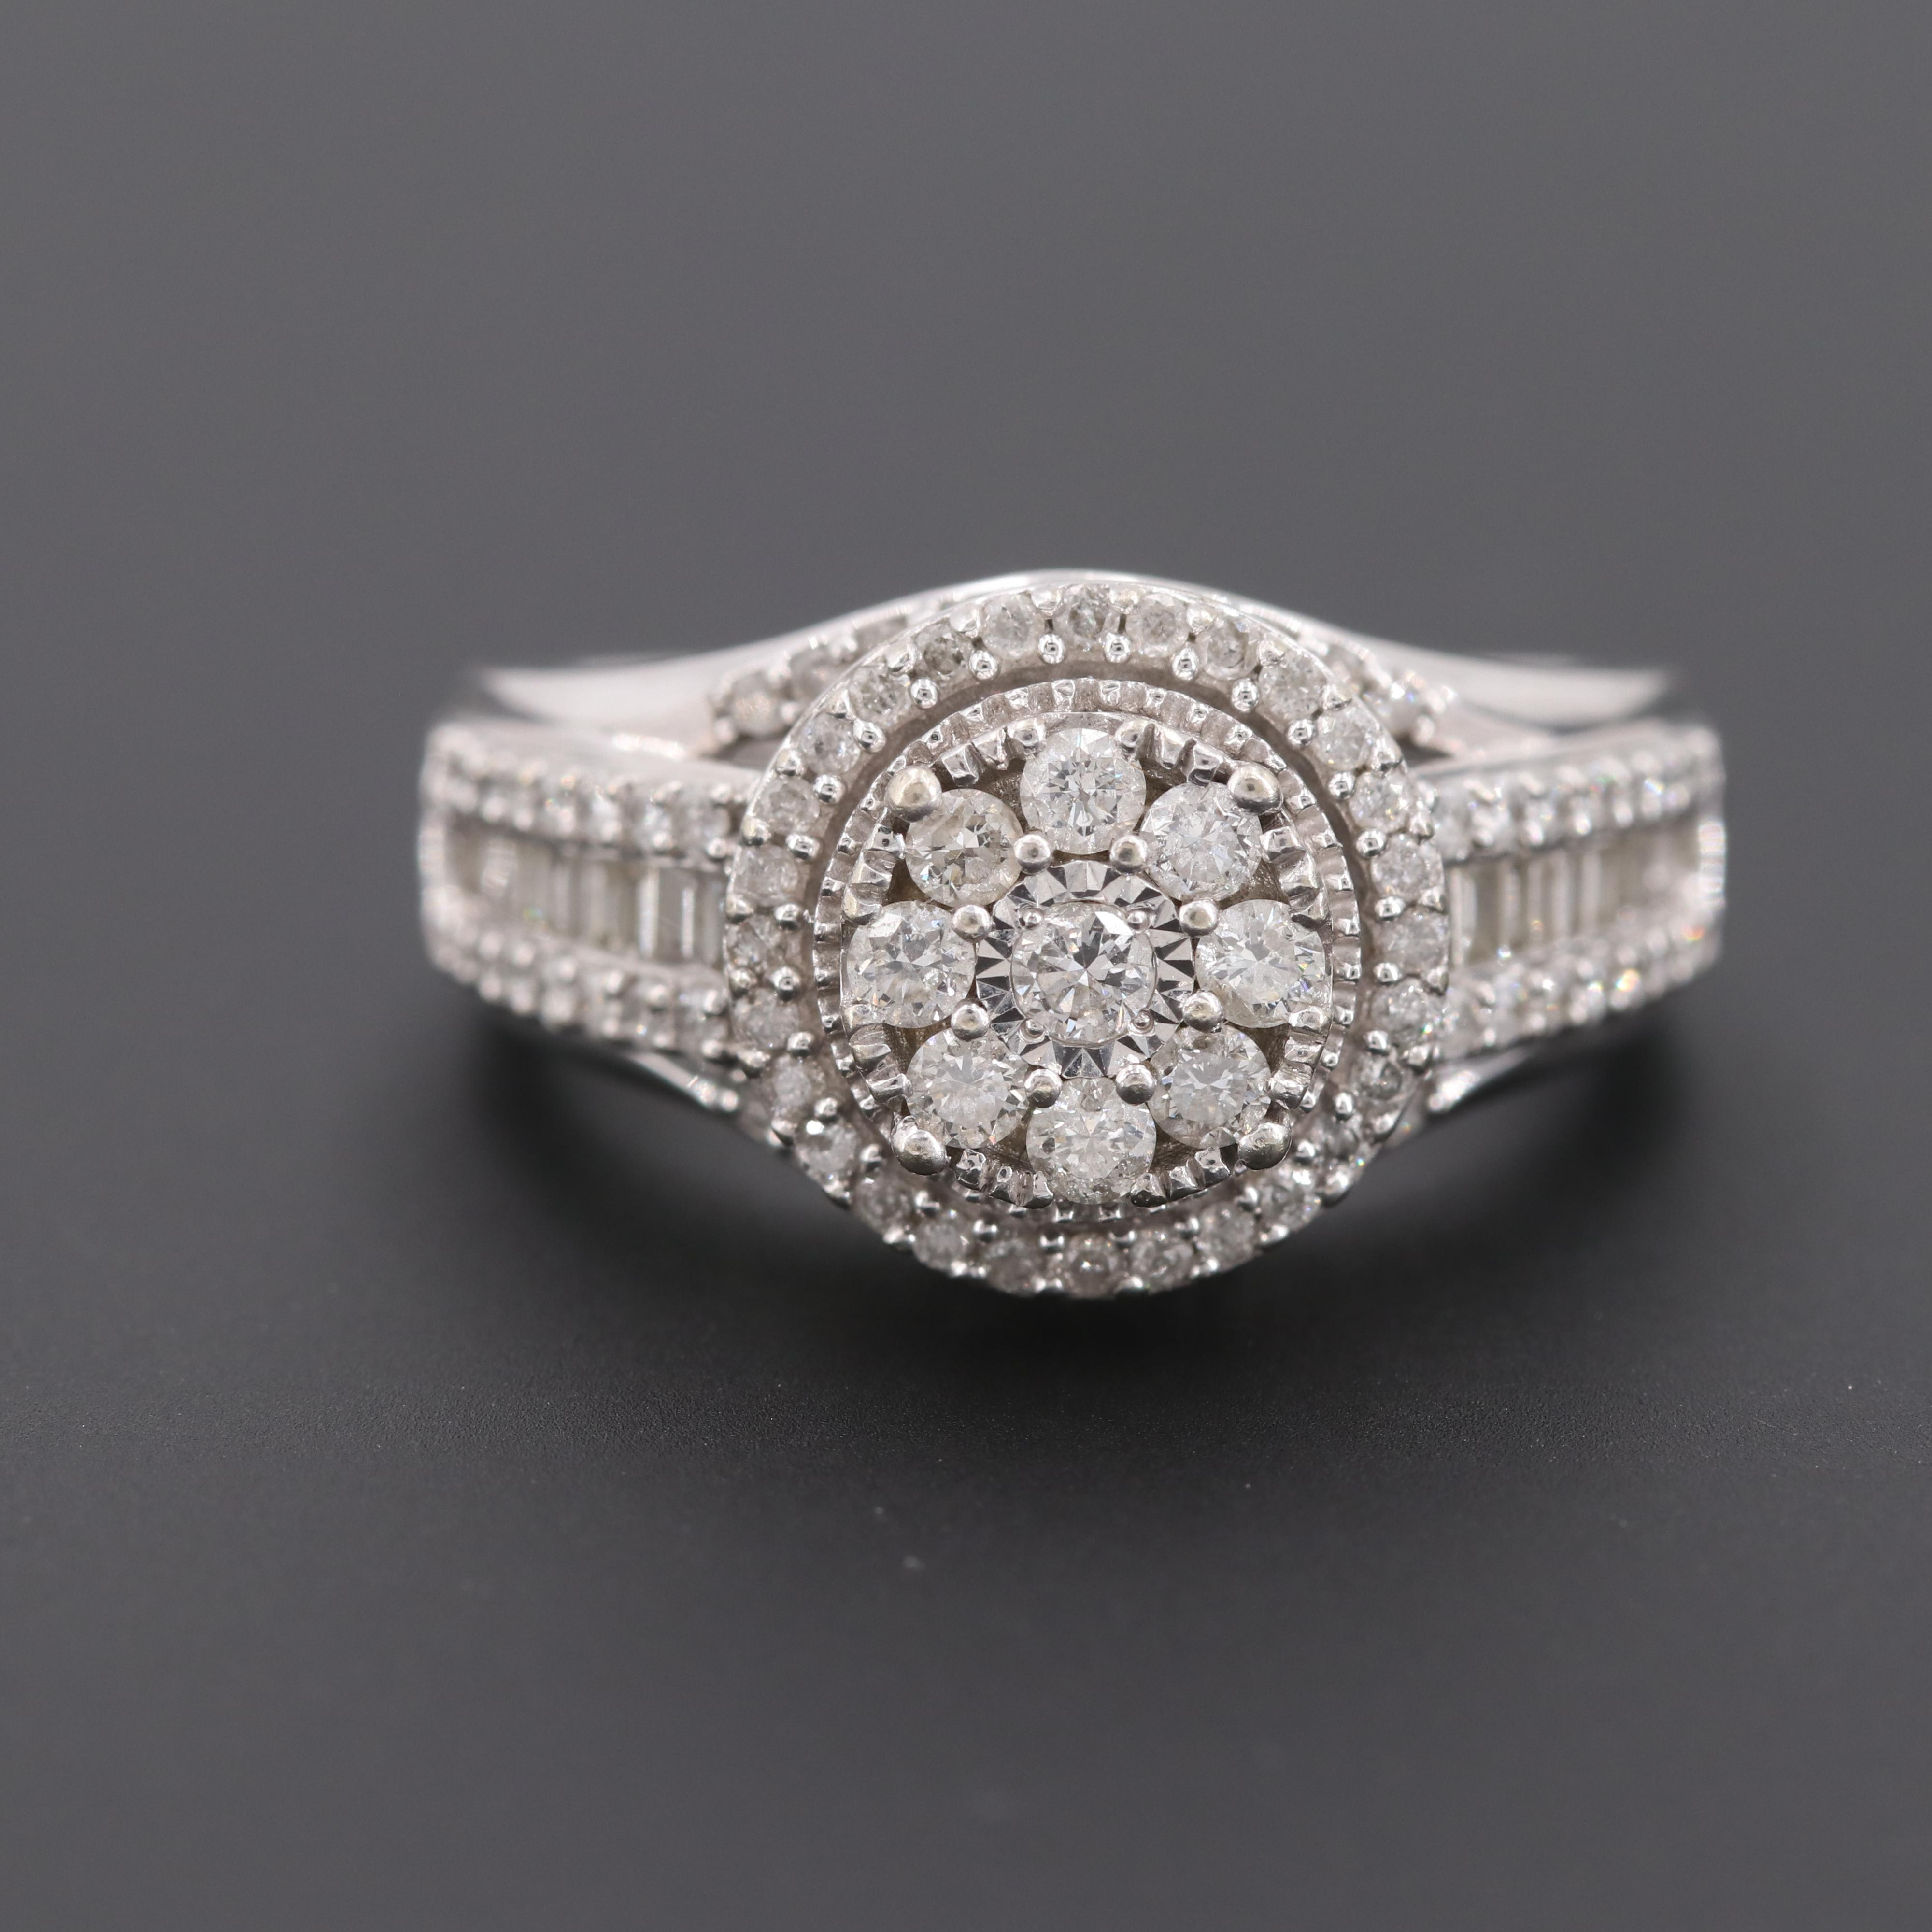 10K White Gold 1.02 CTW Diamond Ring